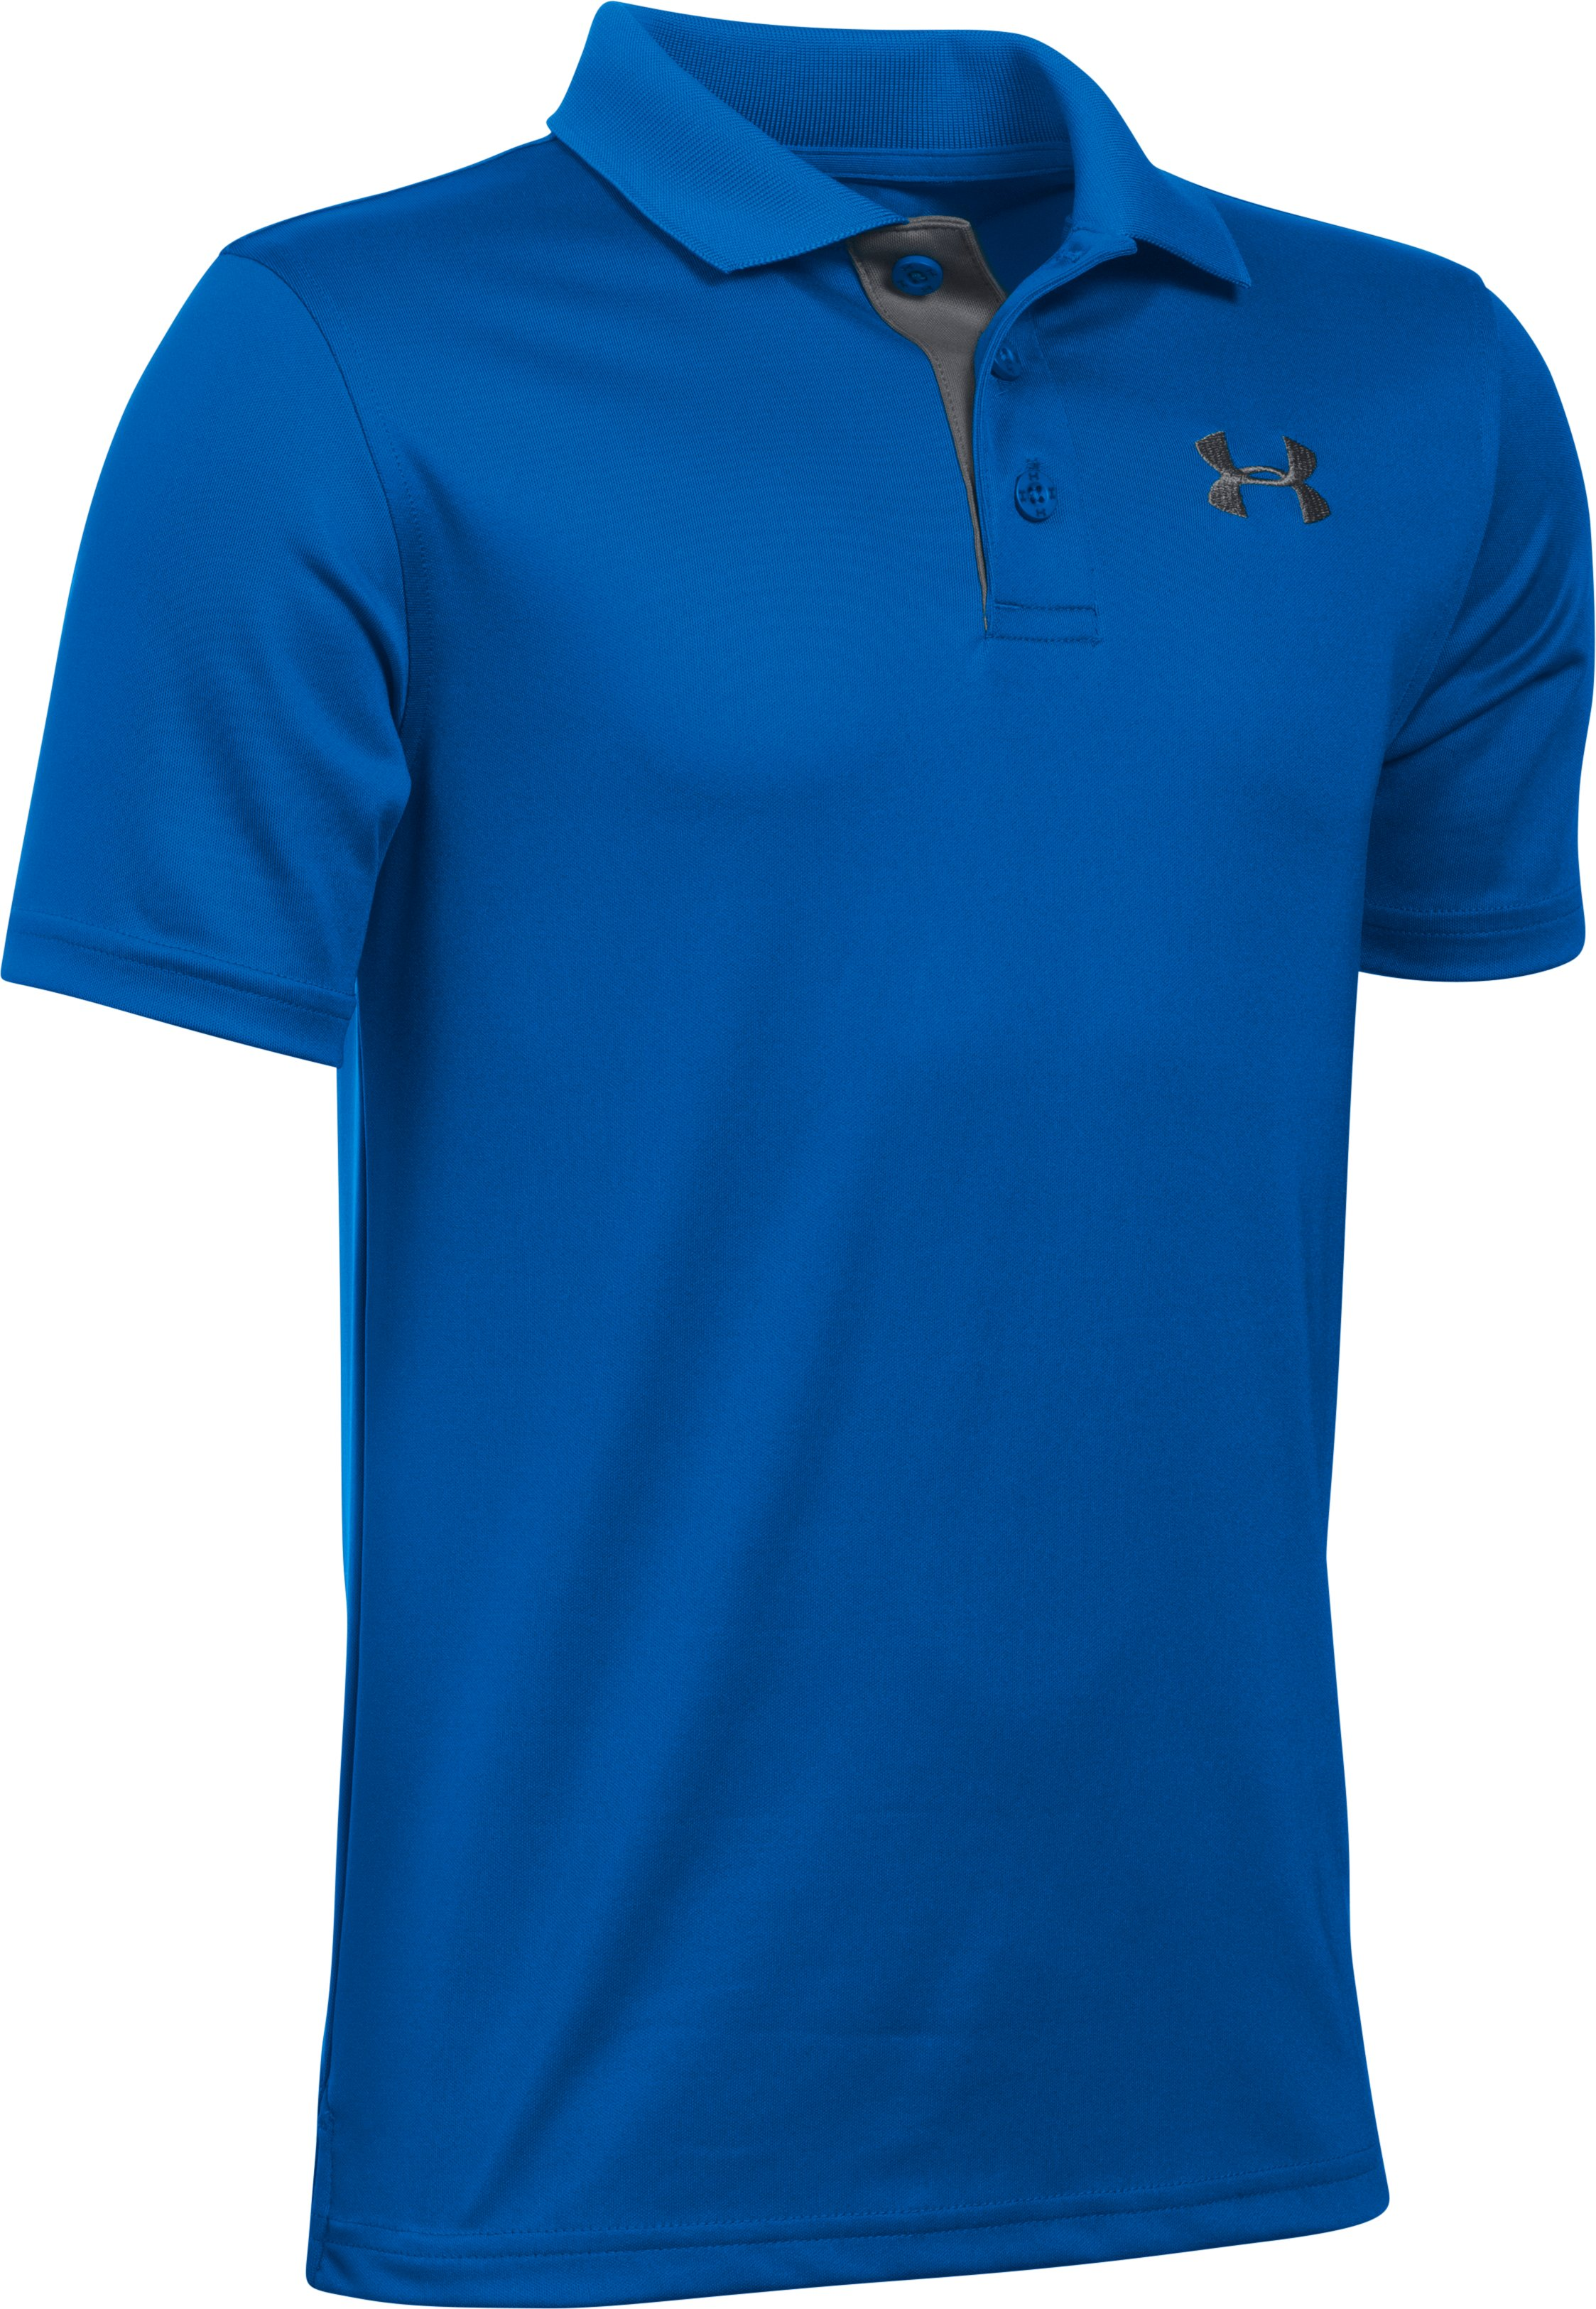 Boys' UA Match Play Polo, ULTRA BLUE, undefined